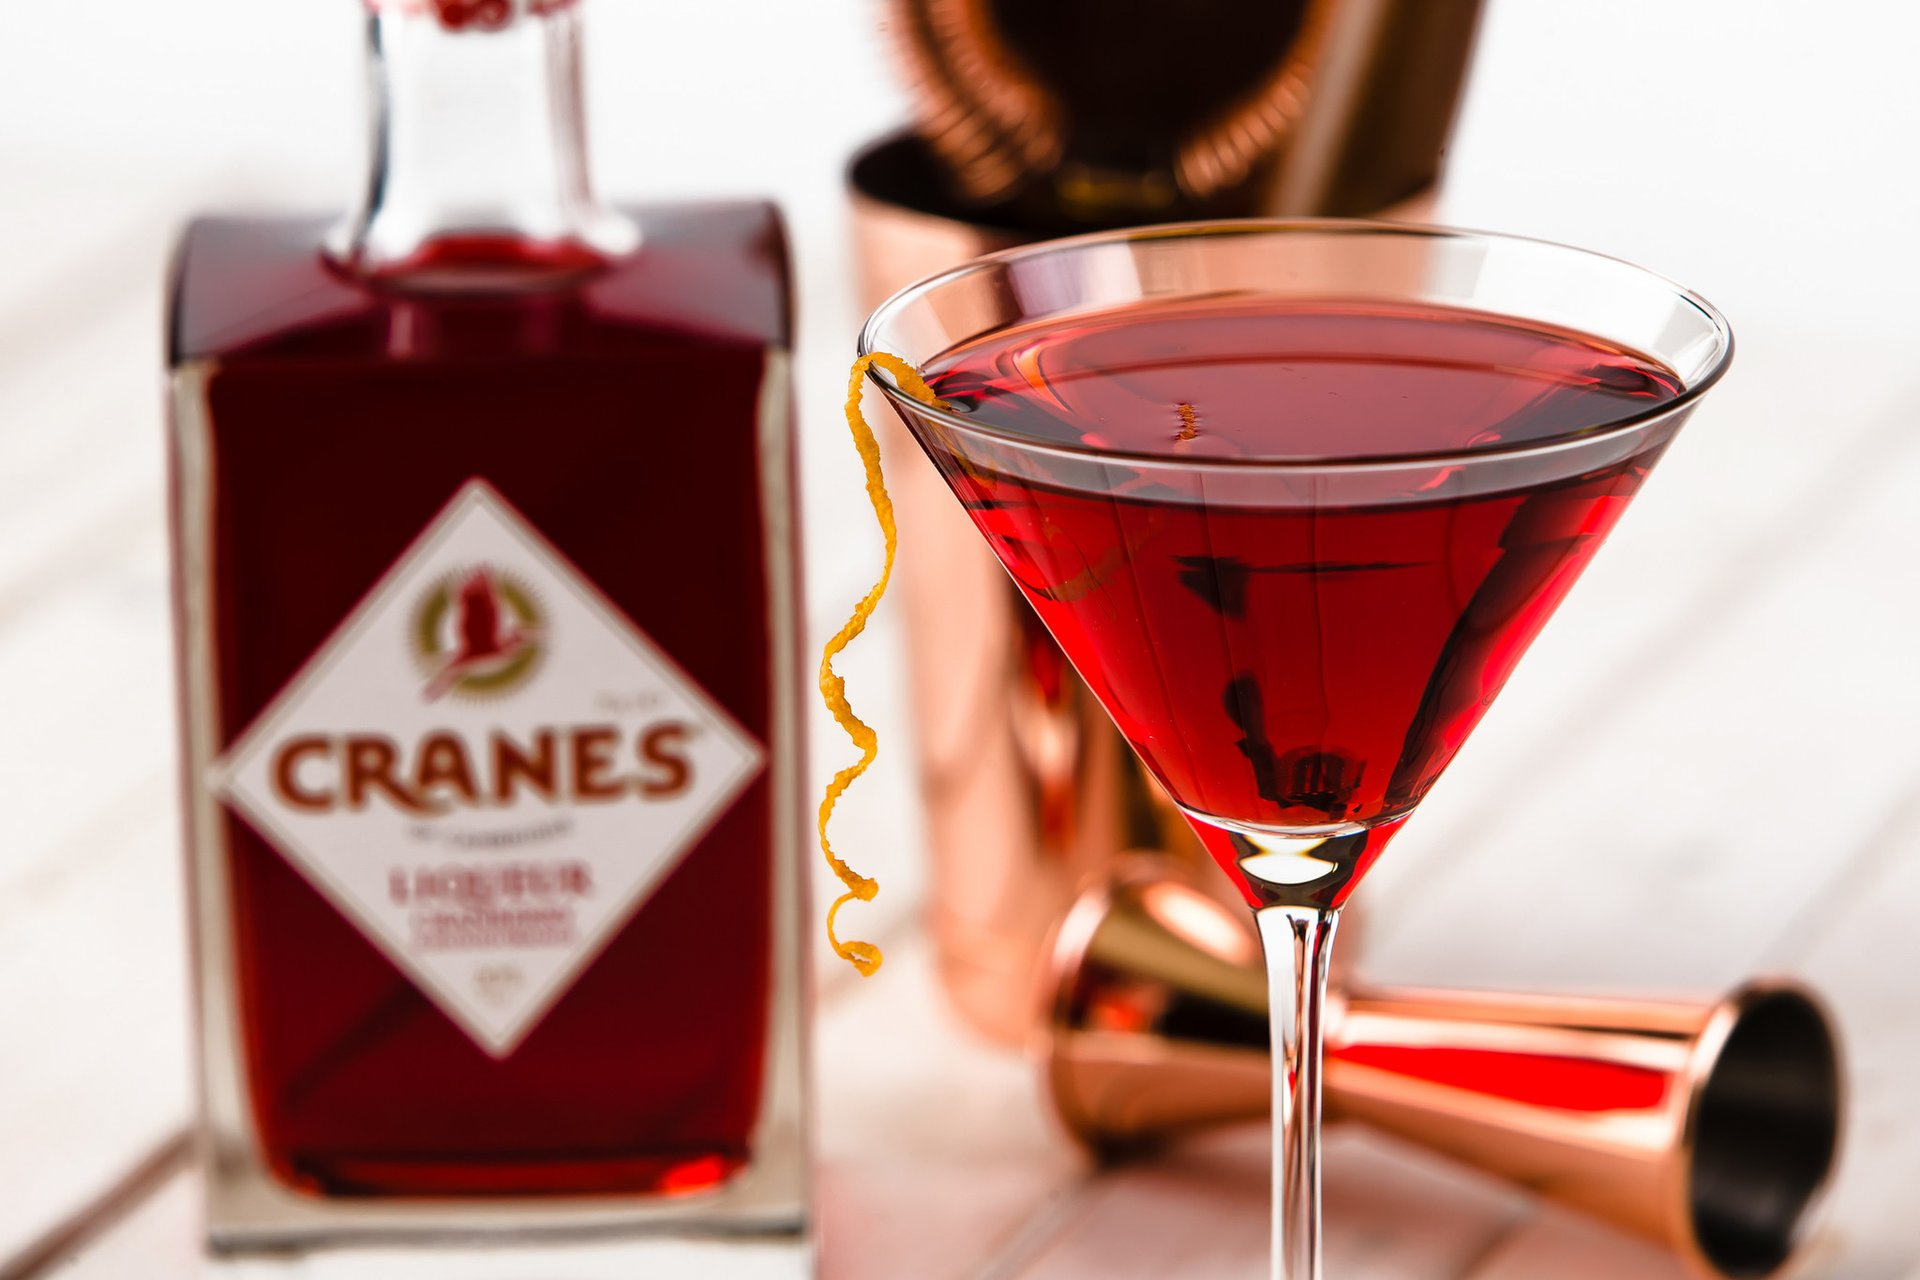 Vada's foodie Christmas gift guide 2017 Cranes Liqueur